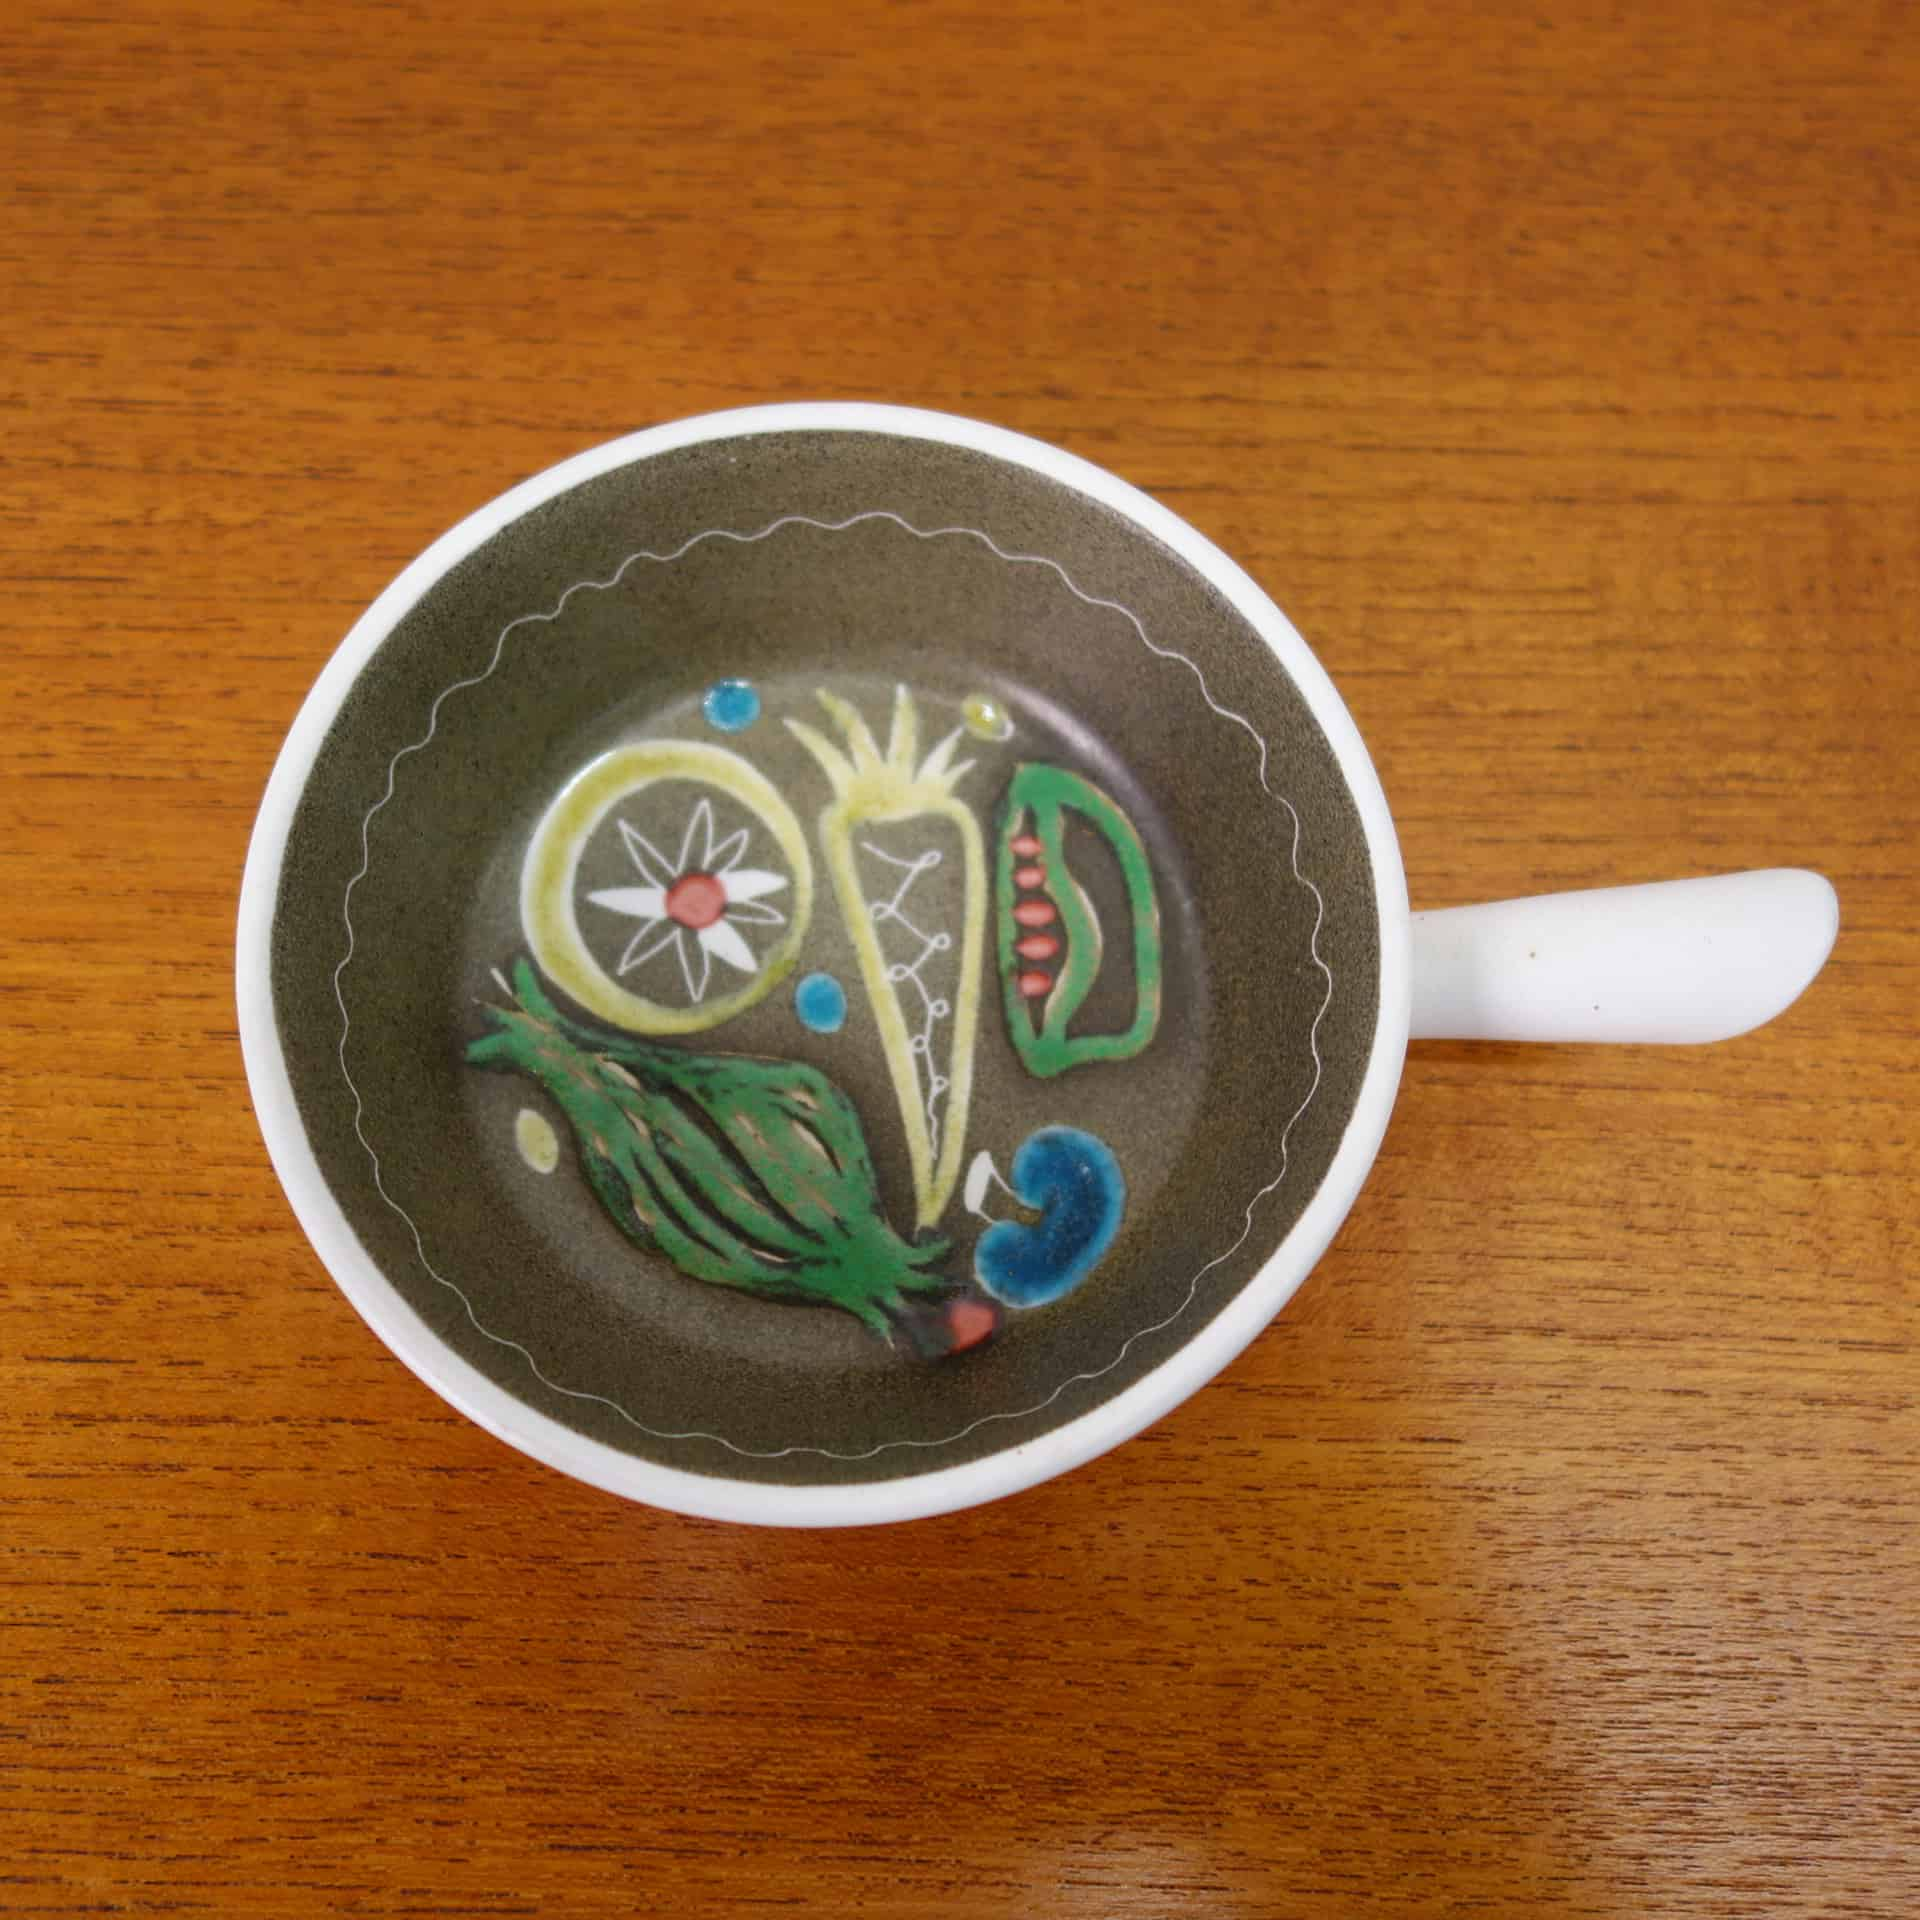 1960s cloisonne handled dish by Glyn Colledge